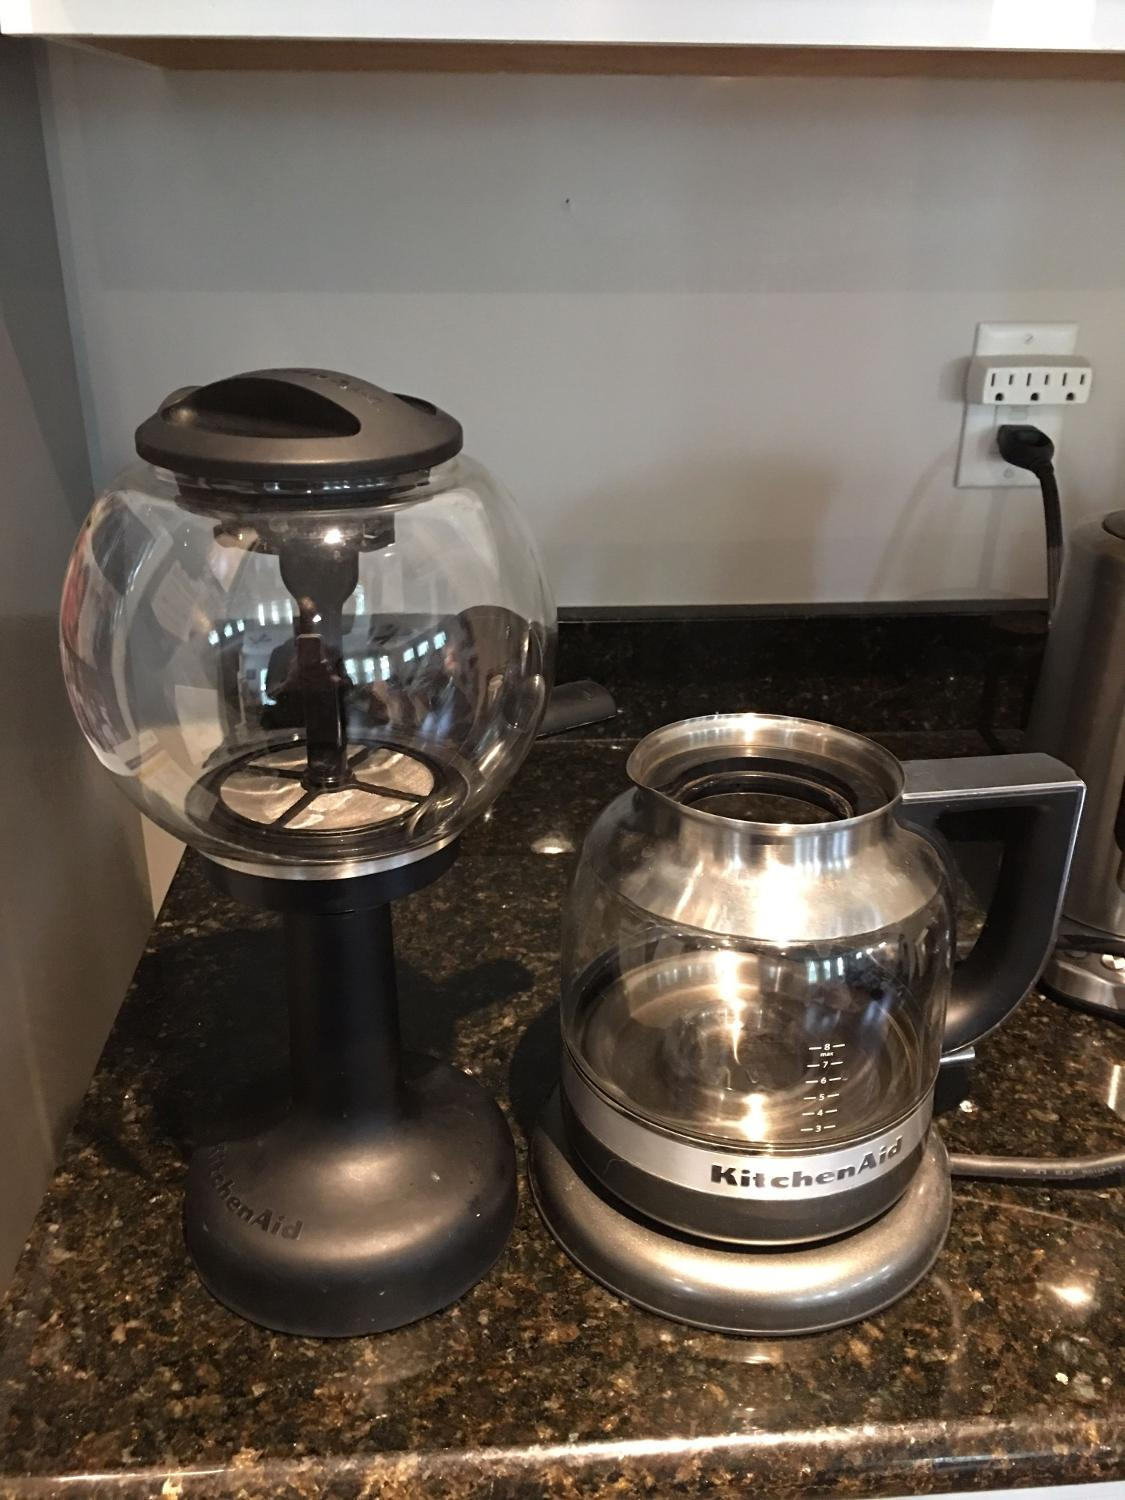 ... Siphon Coffee Maker for sale in Charlotte, North Carolina for 2017